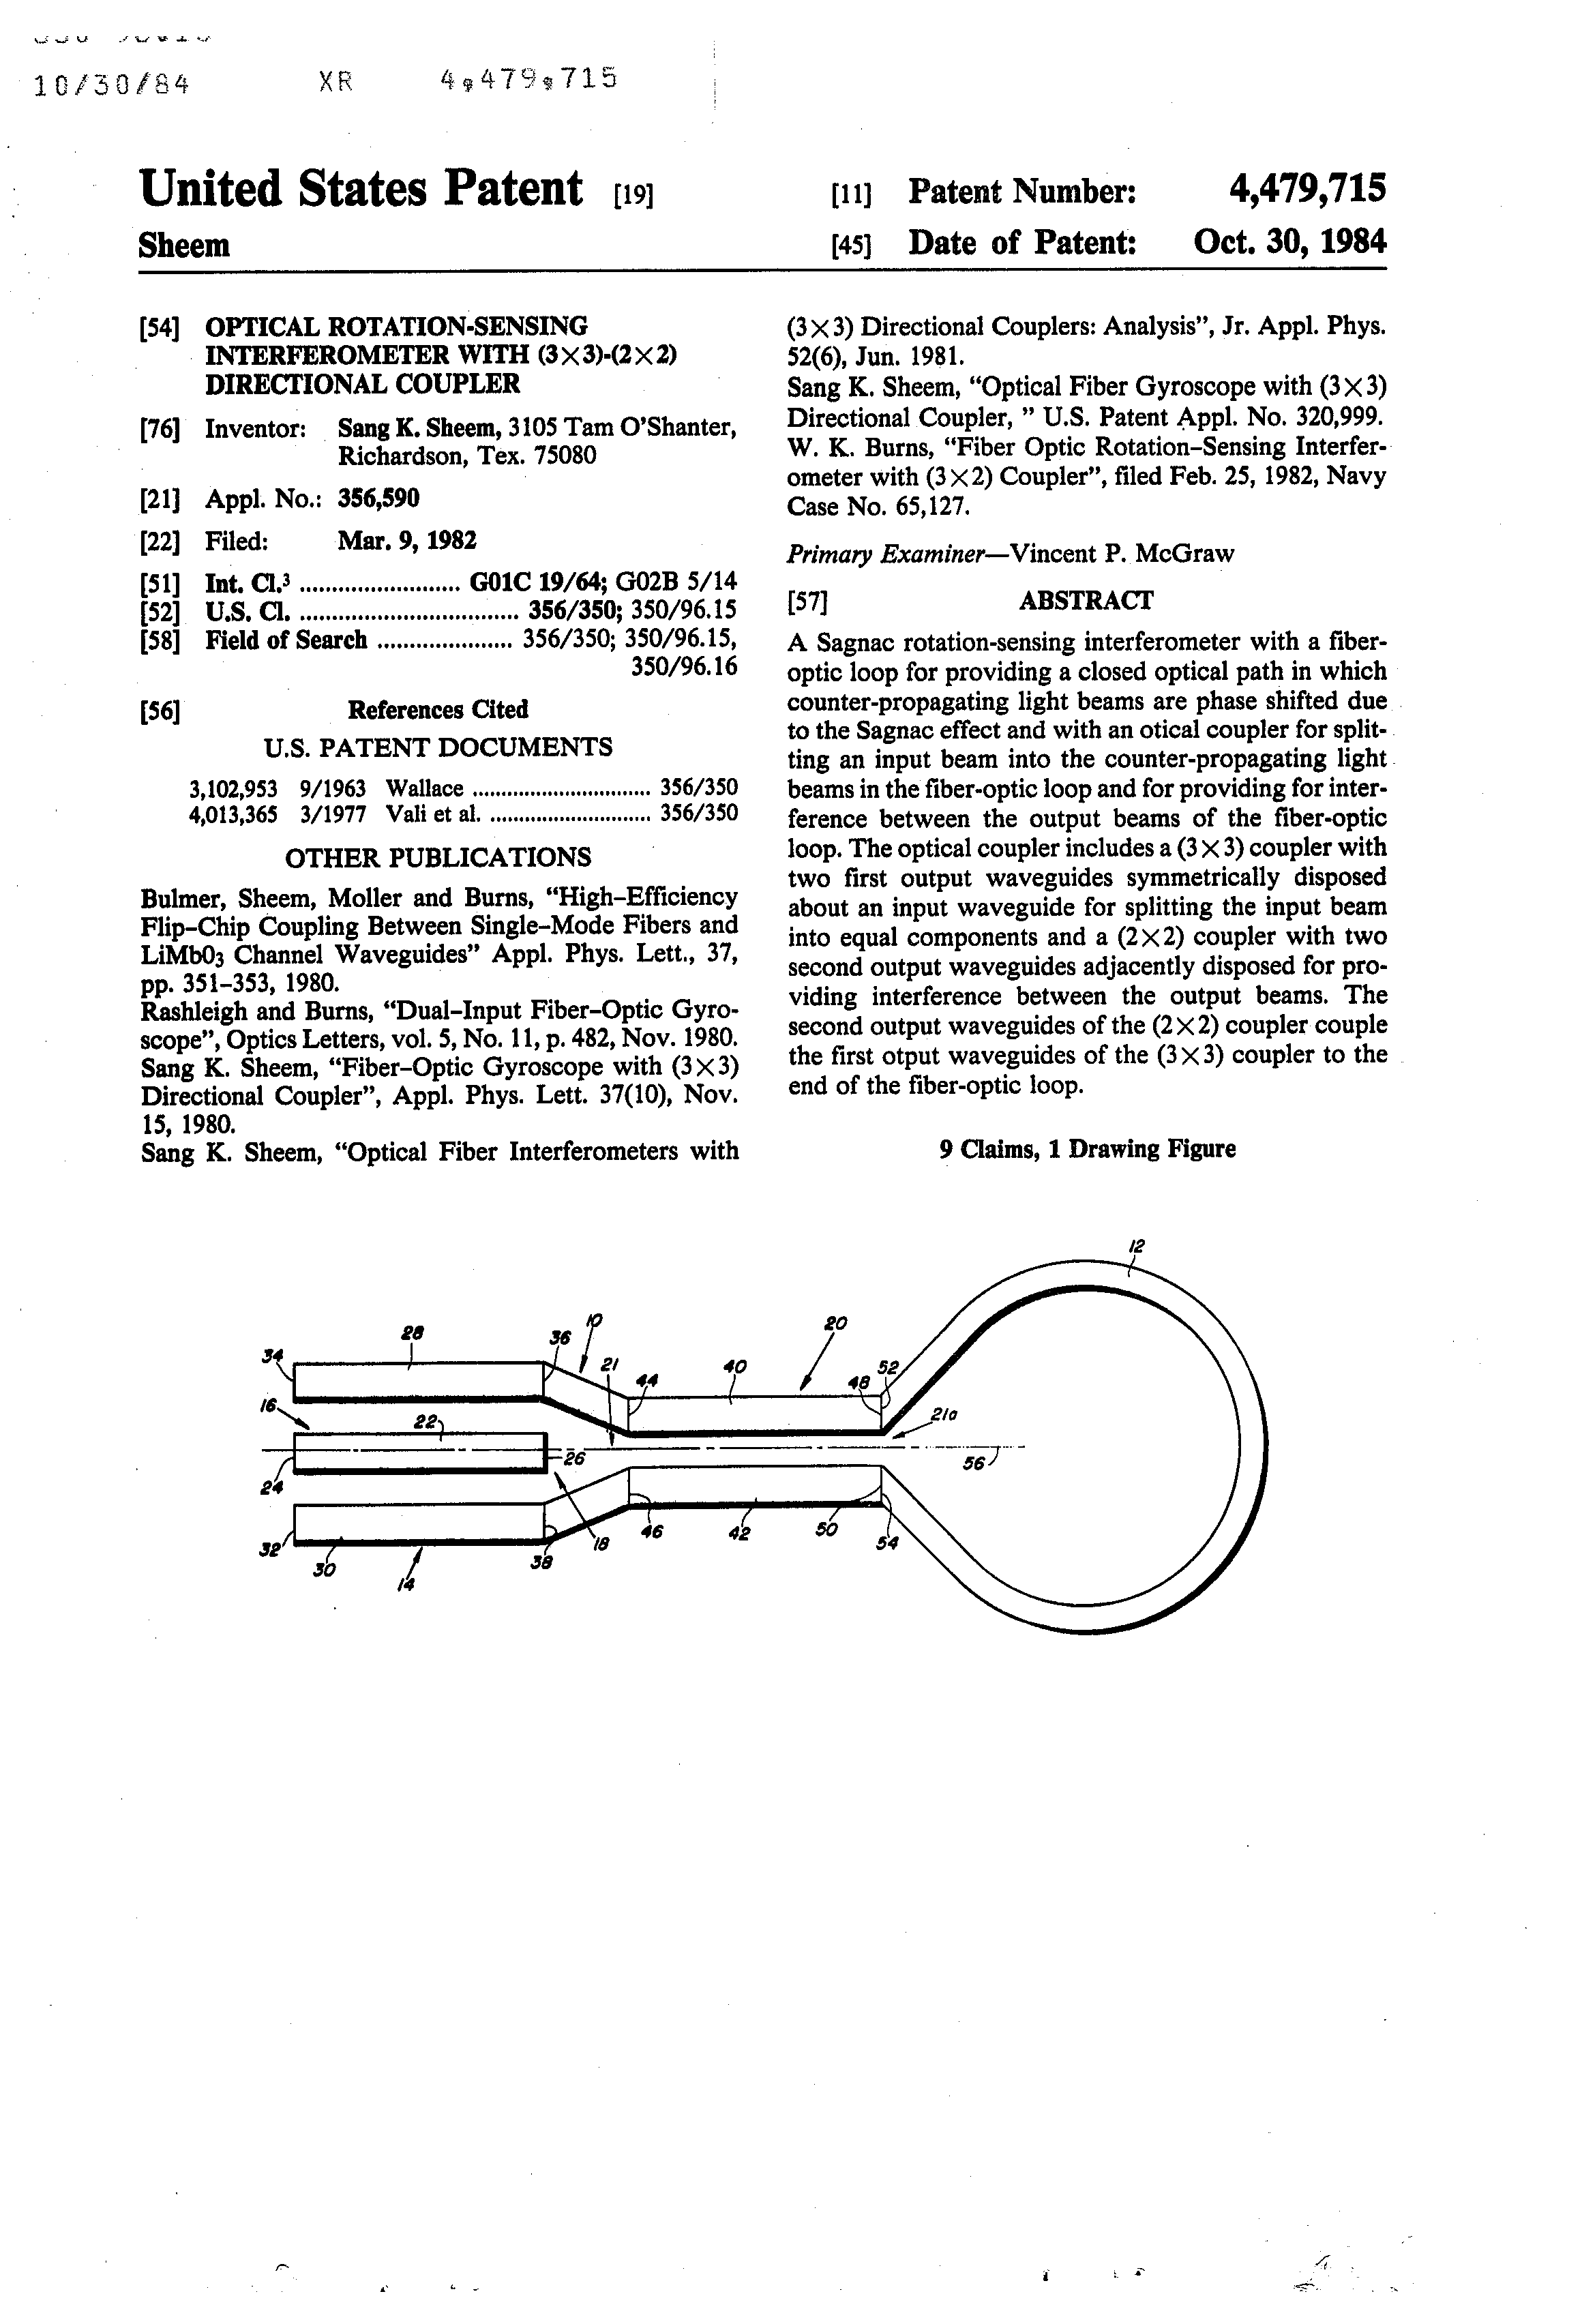 US 4479715 A - Optical Rotation-sensing Interferometer With